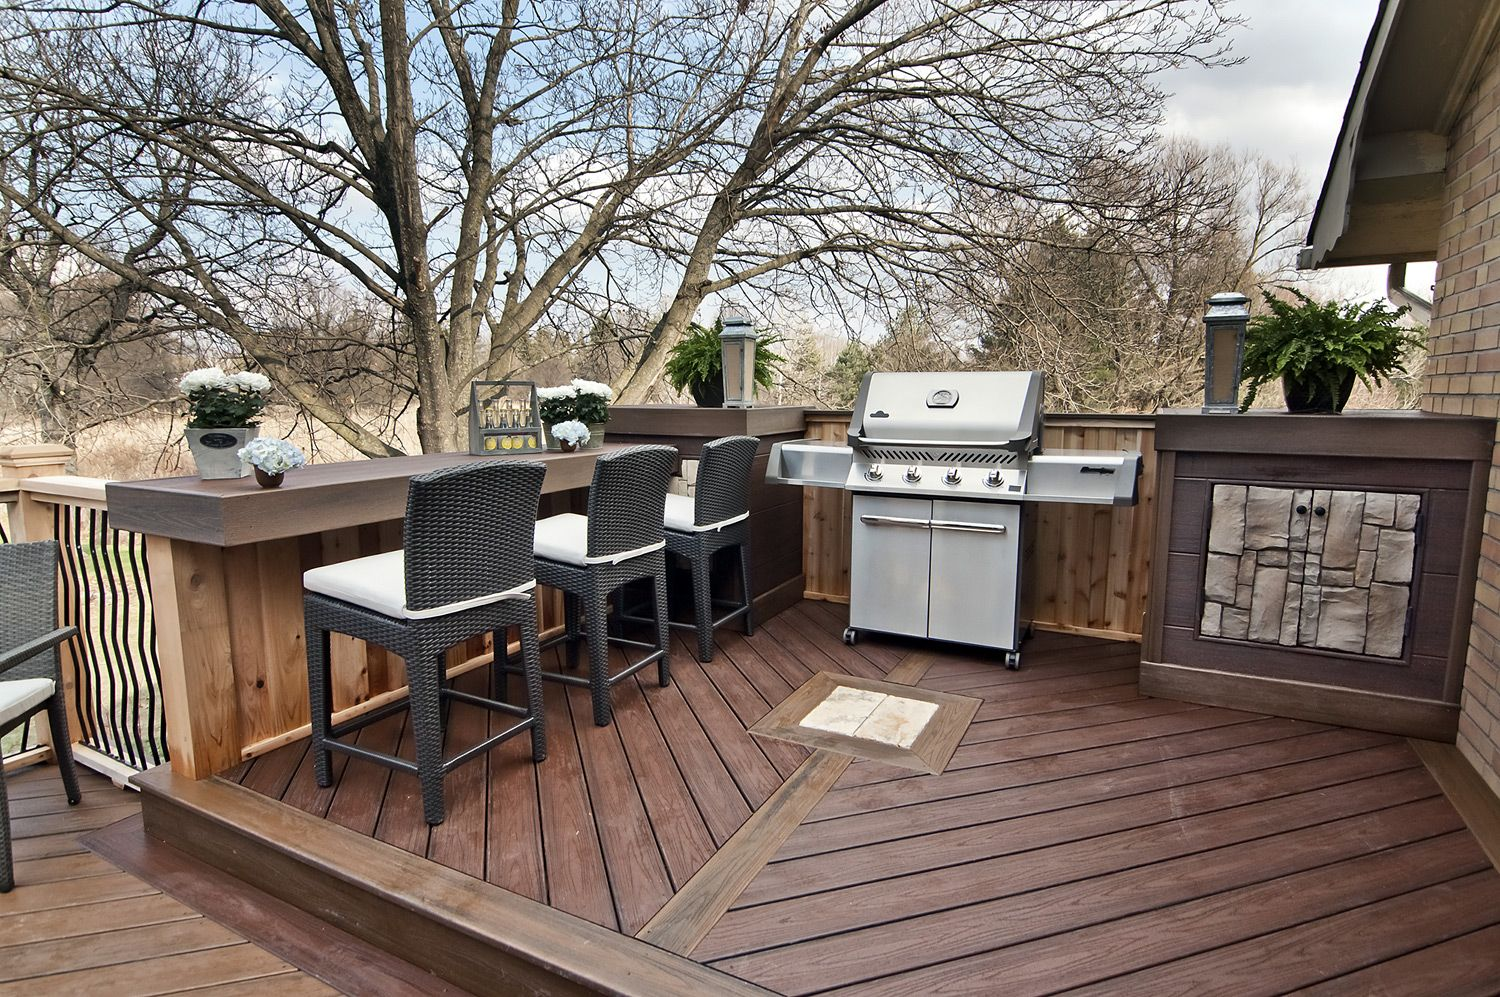 A Barbeque Nook With Side Tables & A Built In Cabinet, And